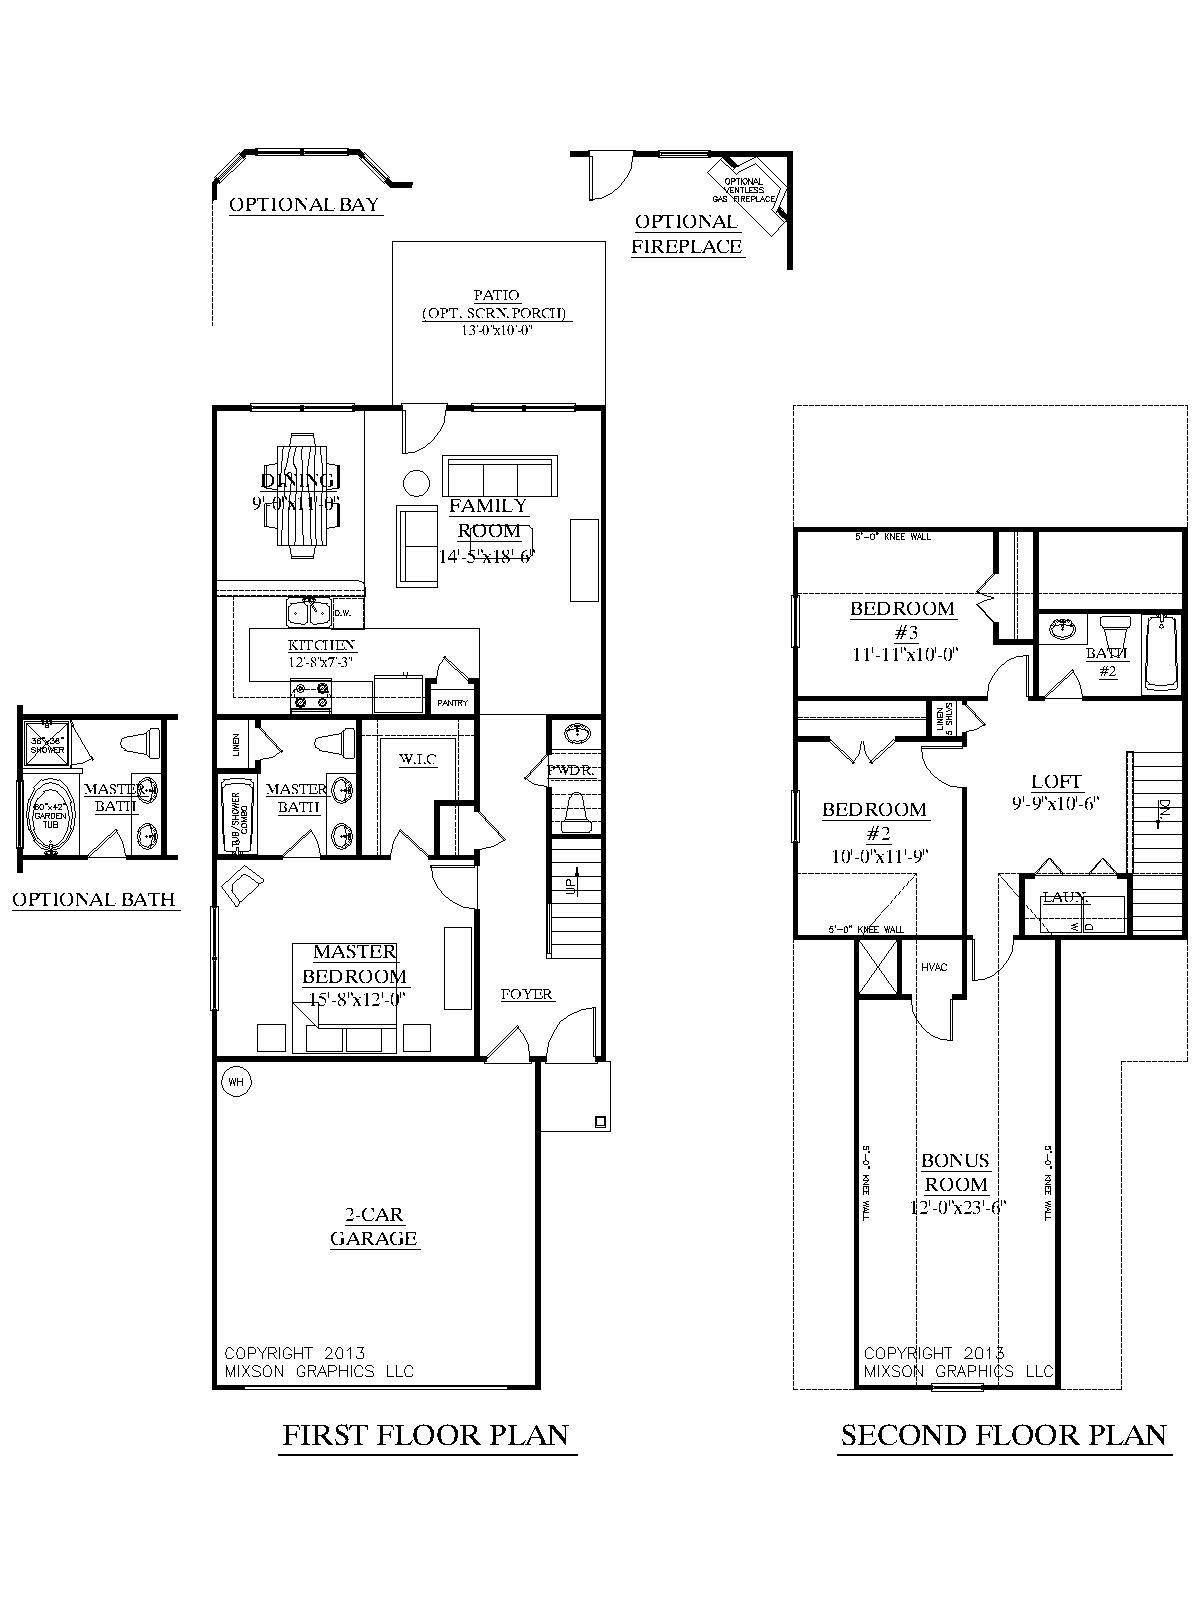 2f701b0139425f0c602d650ff1d985d4 Very Narrow House Floor Plans on very narrow kitchen design, narrow home floor plans, very narrow bathroom design, very narrow living room, long narrow floor plans, very narrow kitchen plans, very narrow house designs, narrow lot house designs floor plans, narrow apartment floor plans,